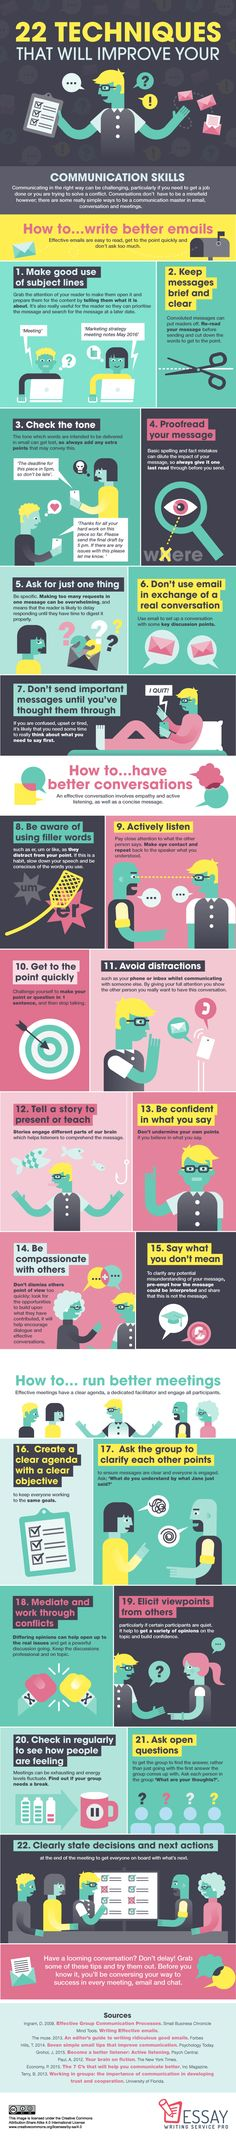 22 Ways to Improve Your Communication Skills Infographic